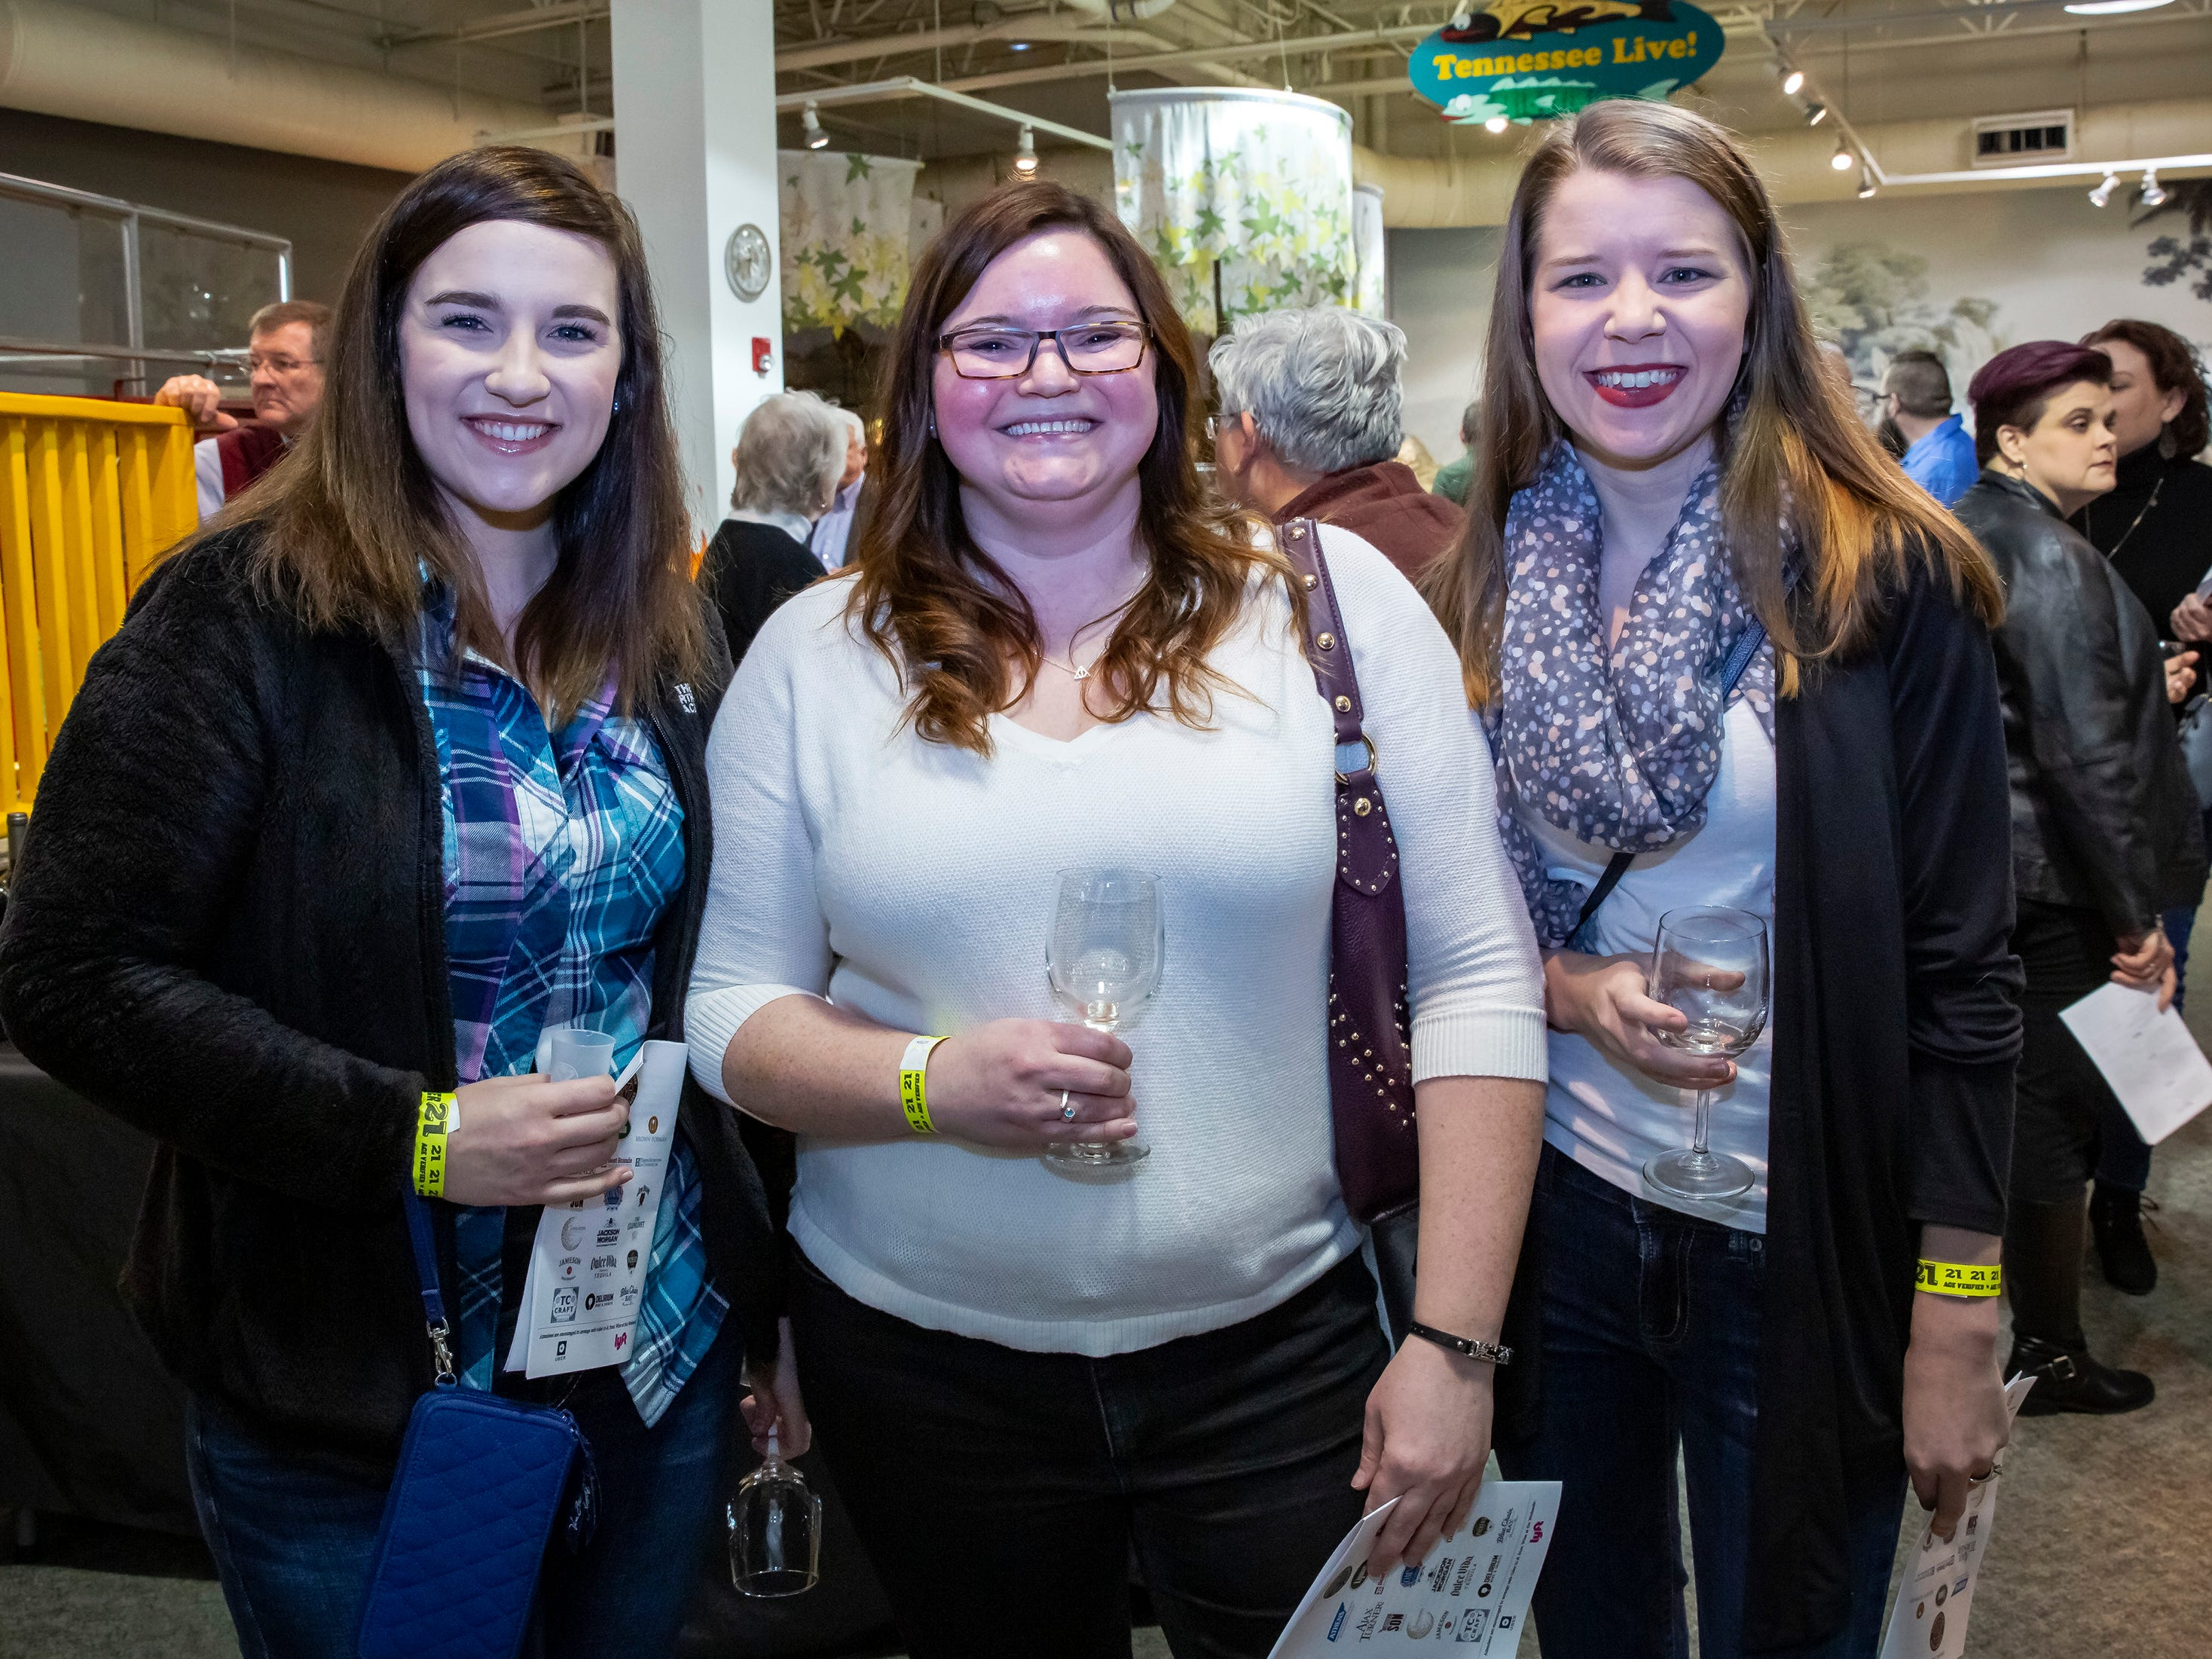 Emily Elliott, Chelsey Cornett and Mellissa Barlar at the 6th annual Wine and Whiskey at the Wetlands event held at the Discovery Center.JIM DAVIS/for the DNJ